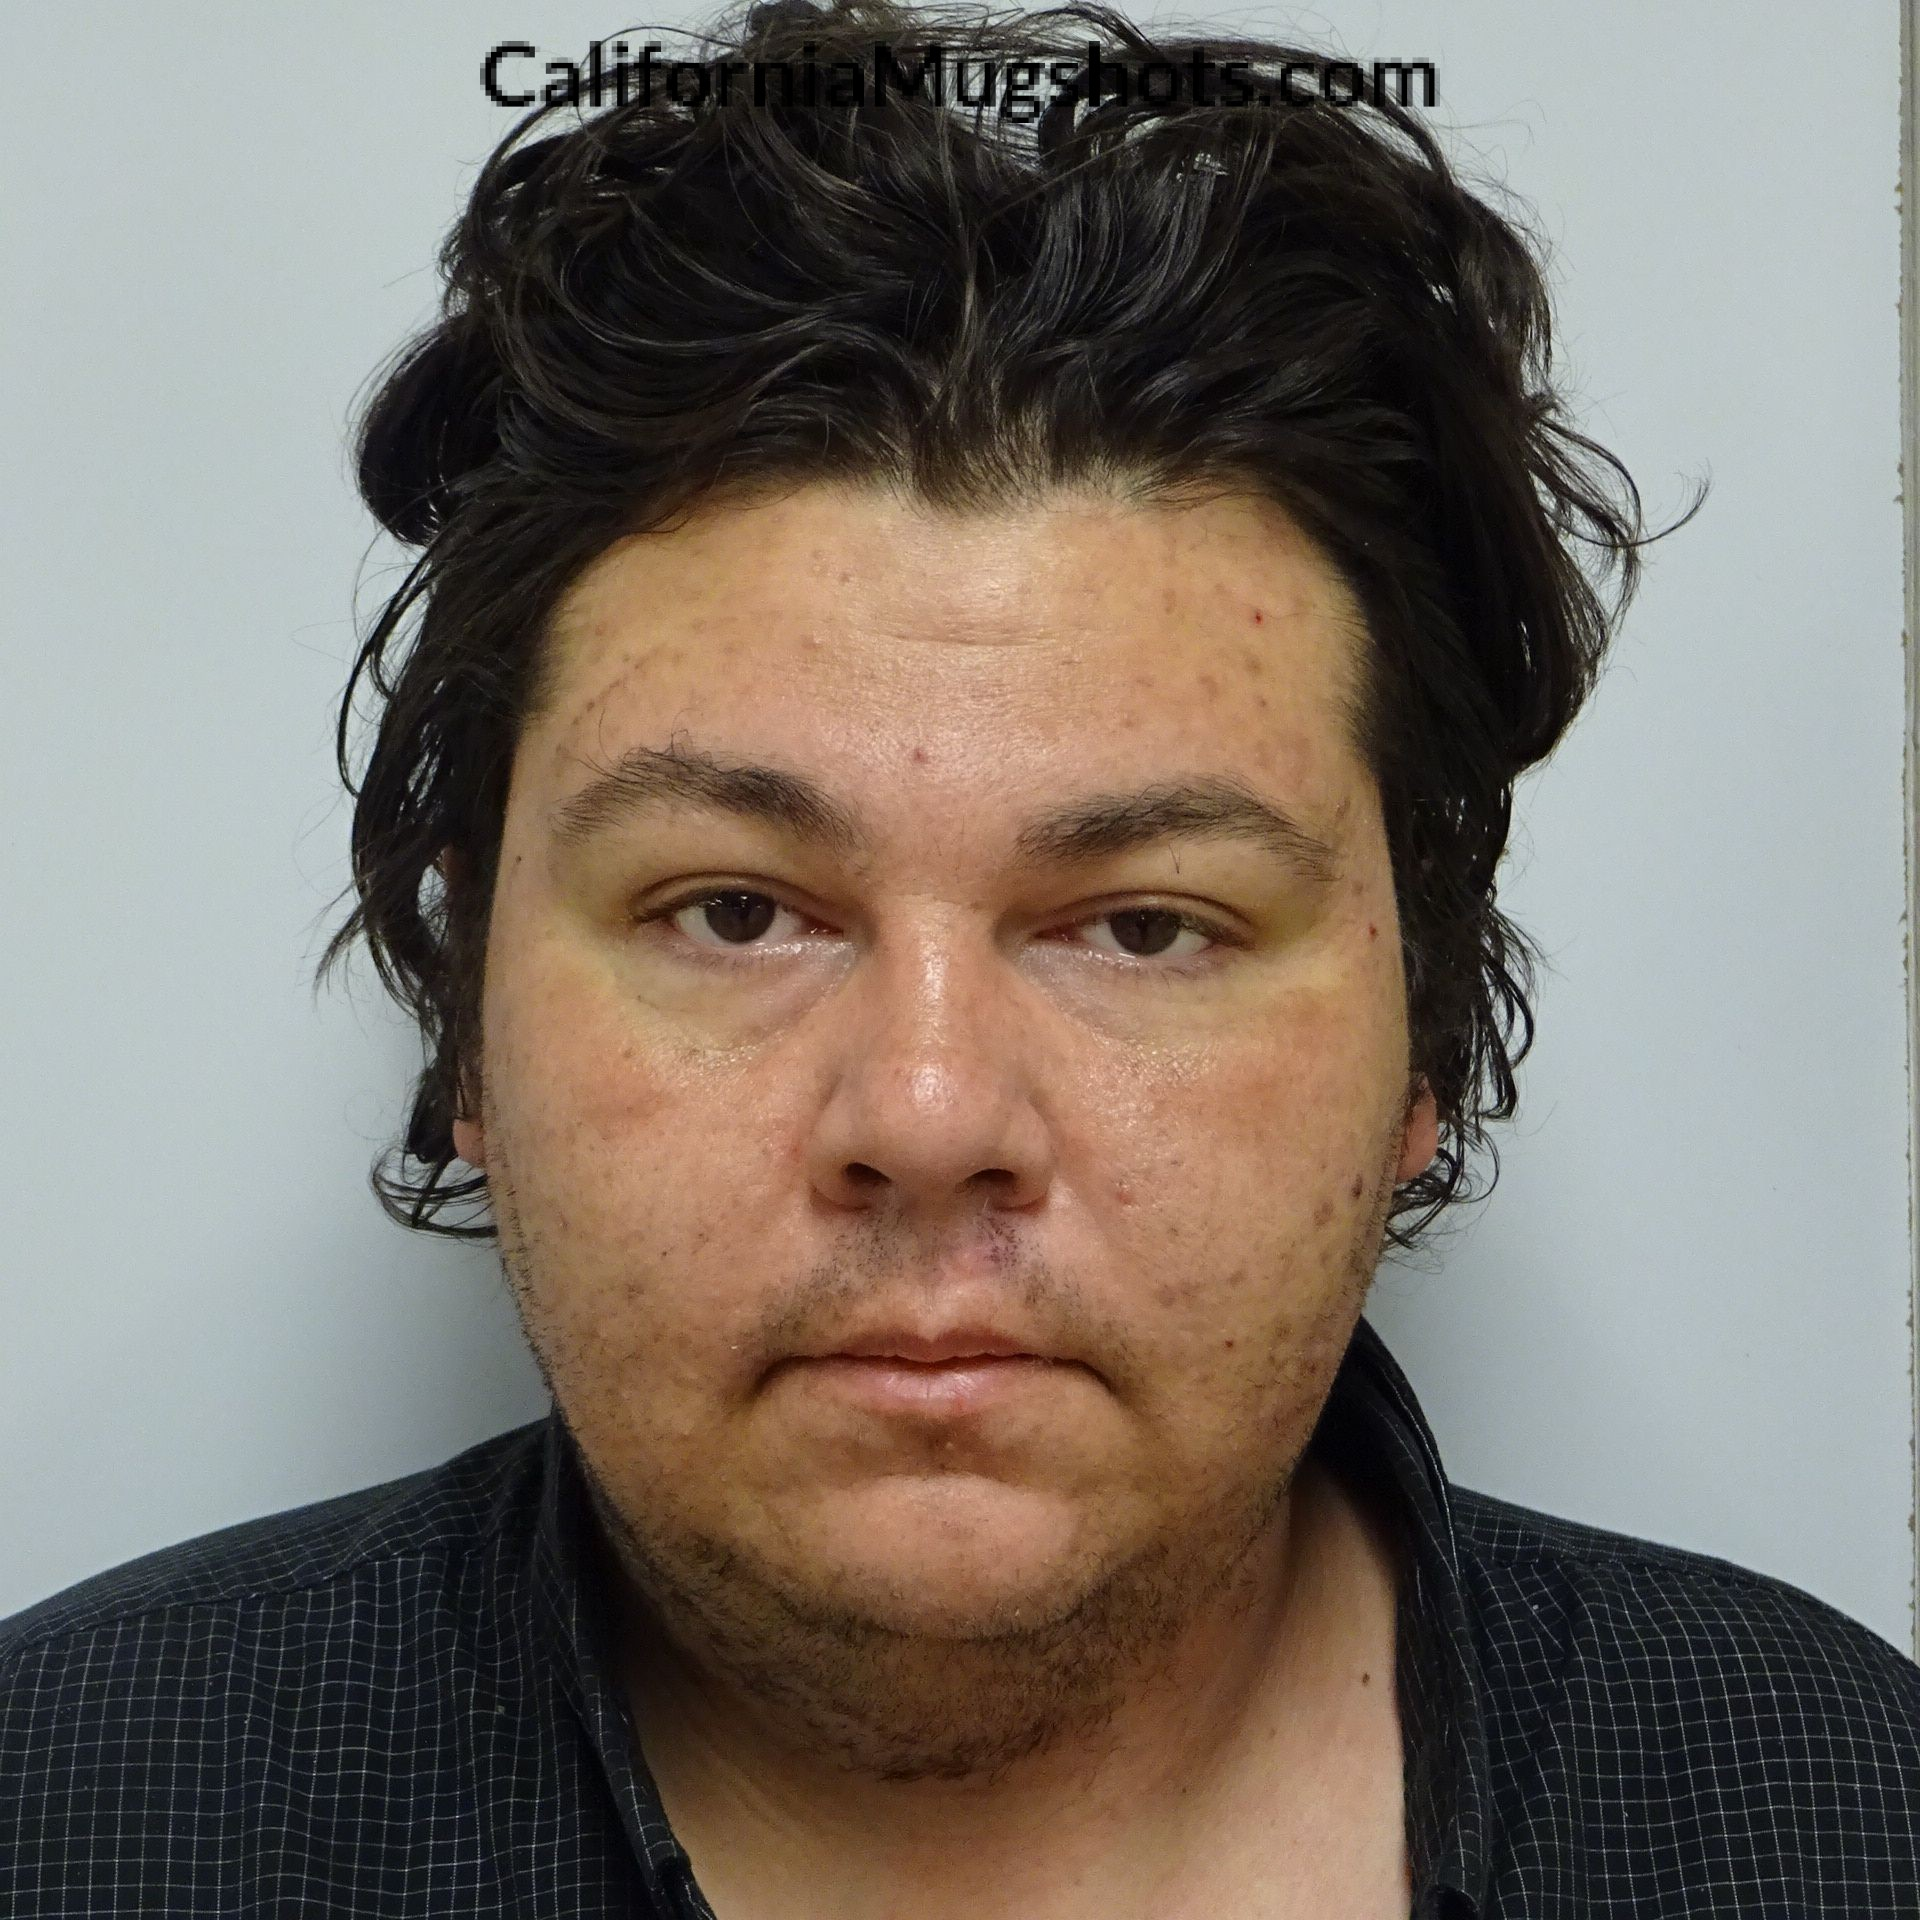 Frankie Robert Gonzales arrested in Lake County,CA